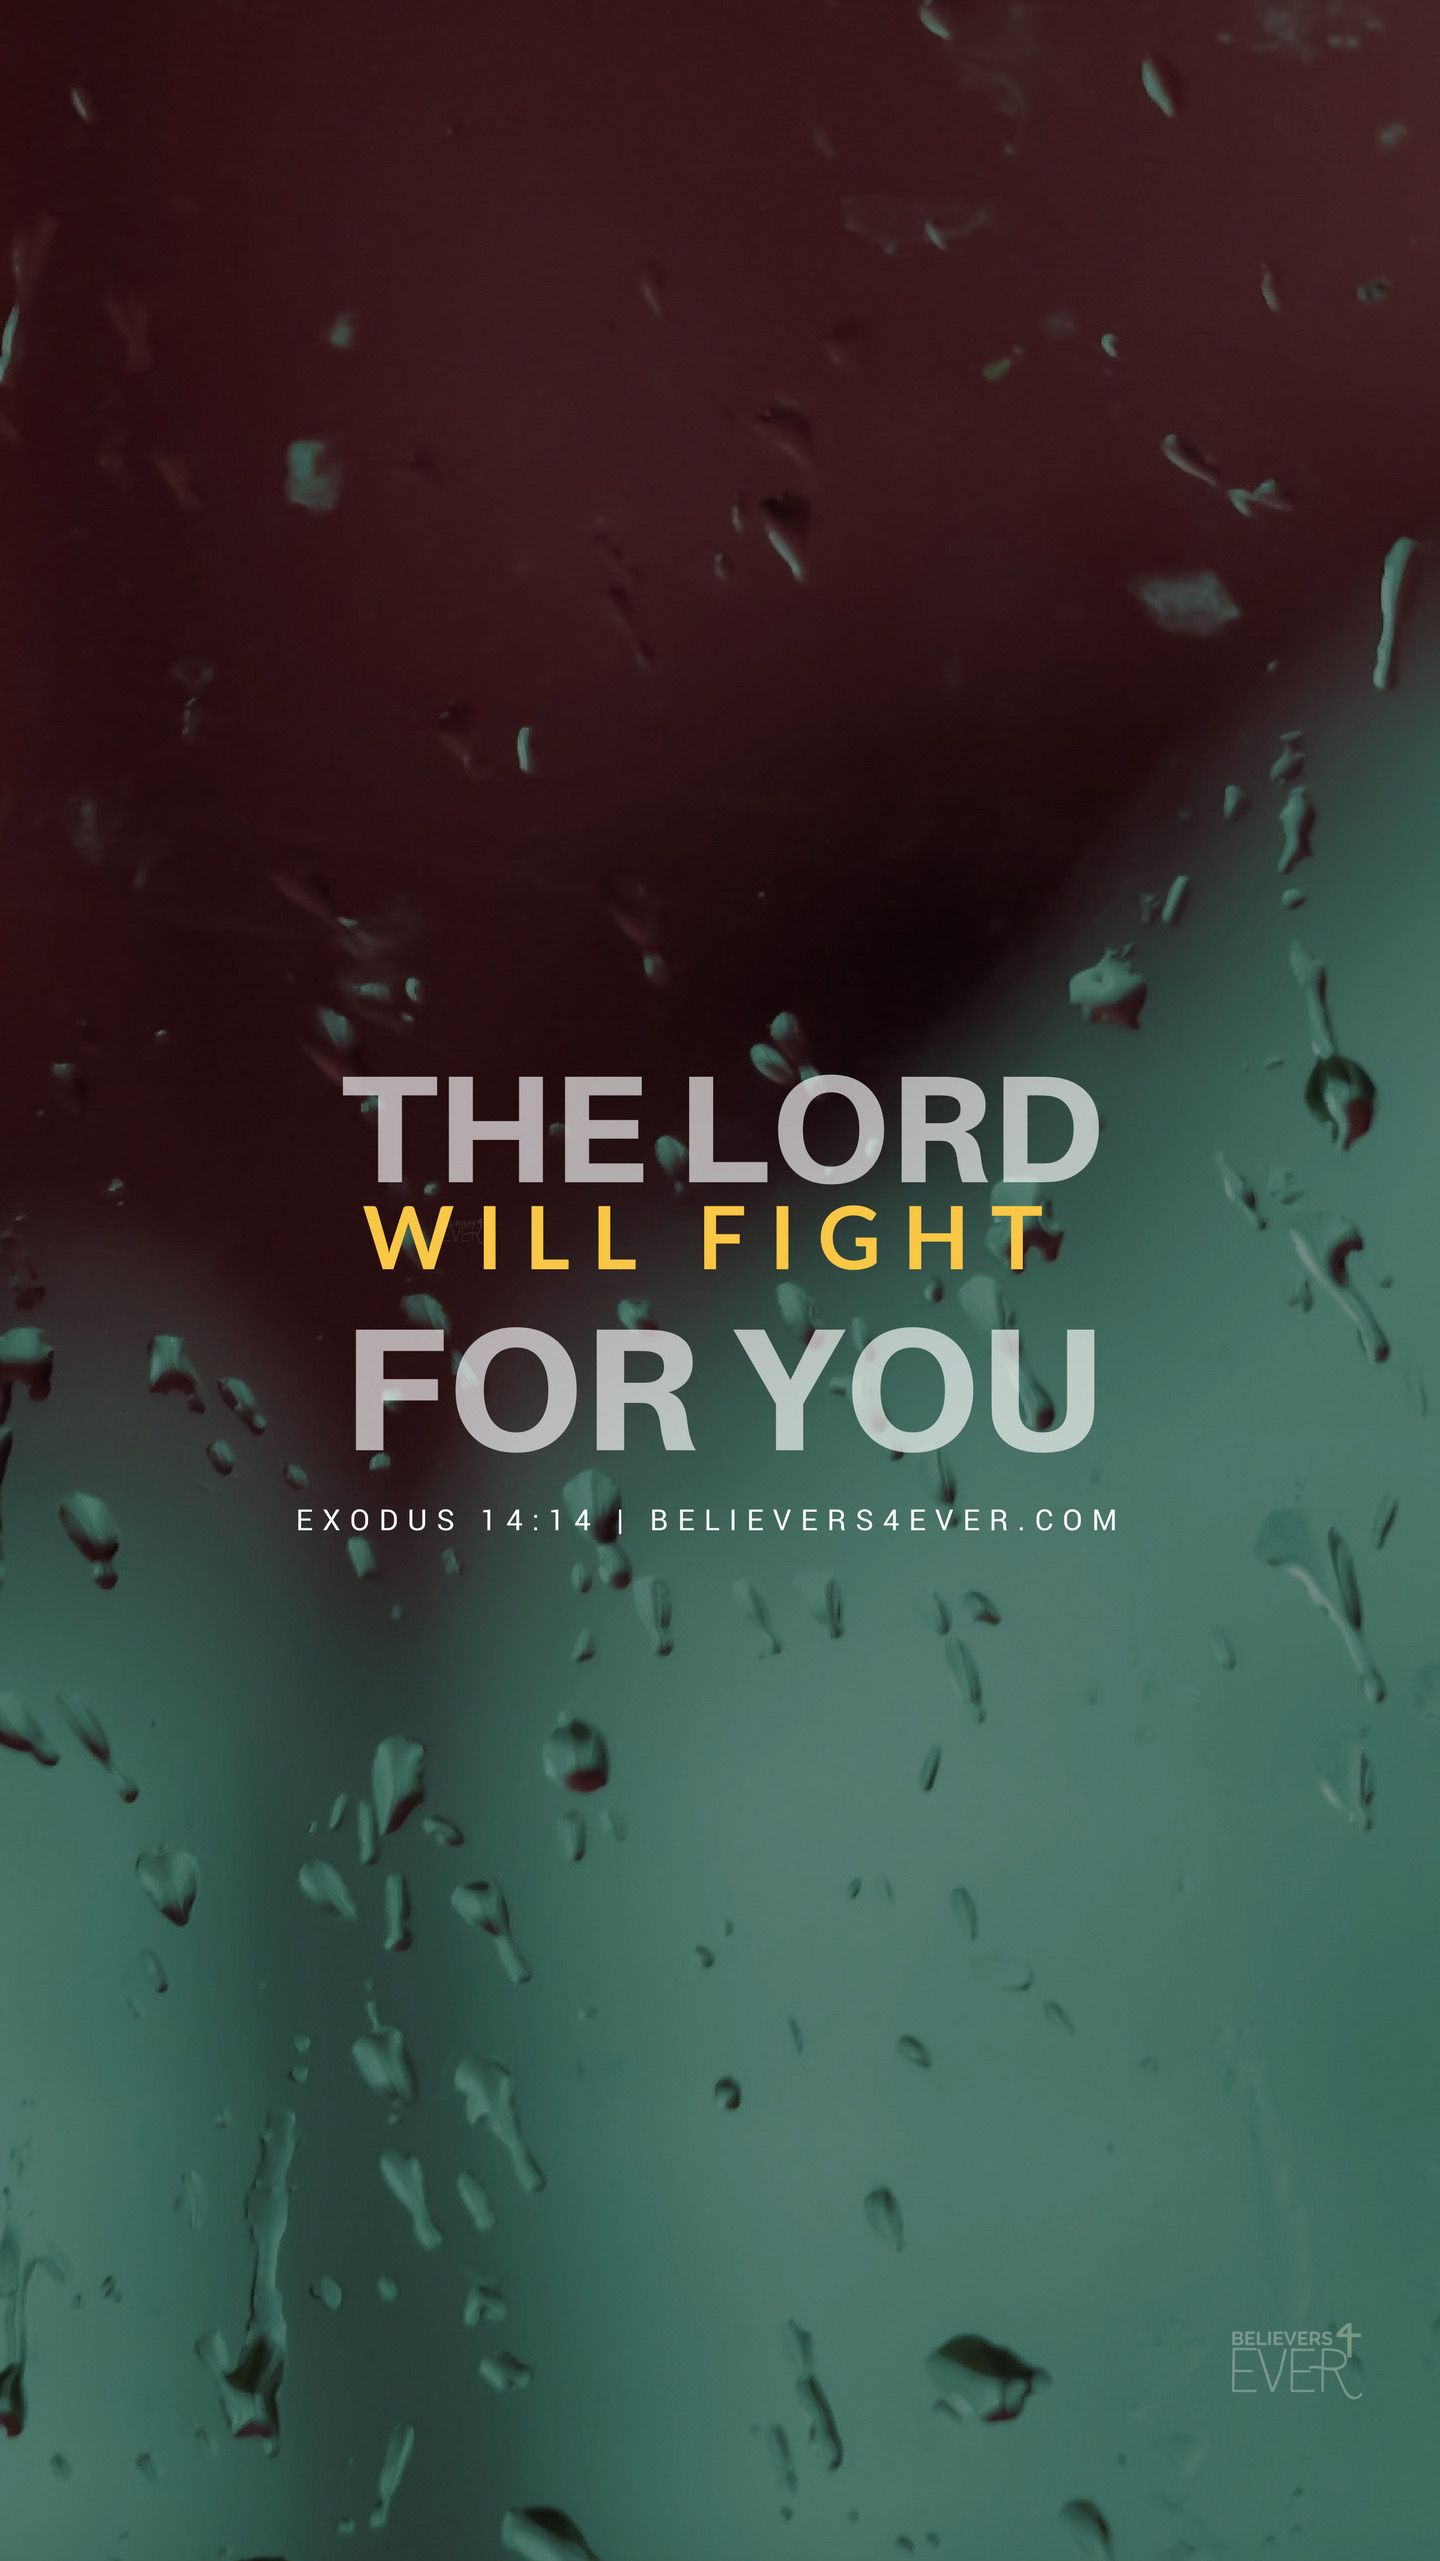 The Lord Will Fight For You Believers4ever Com Bible Verse Wallpaper Bible Quotes Spiritual Quotes